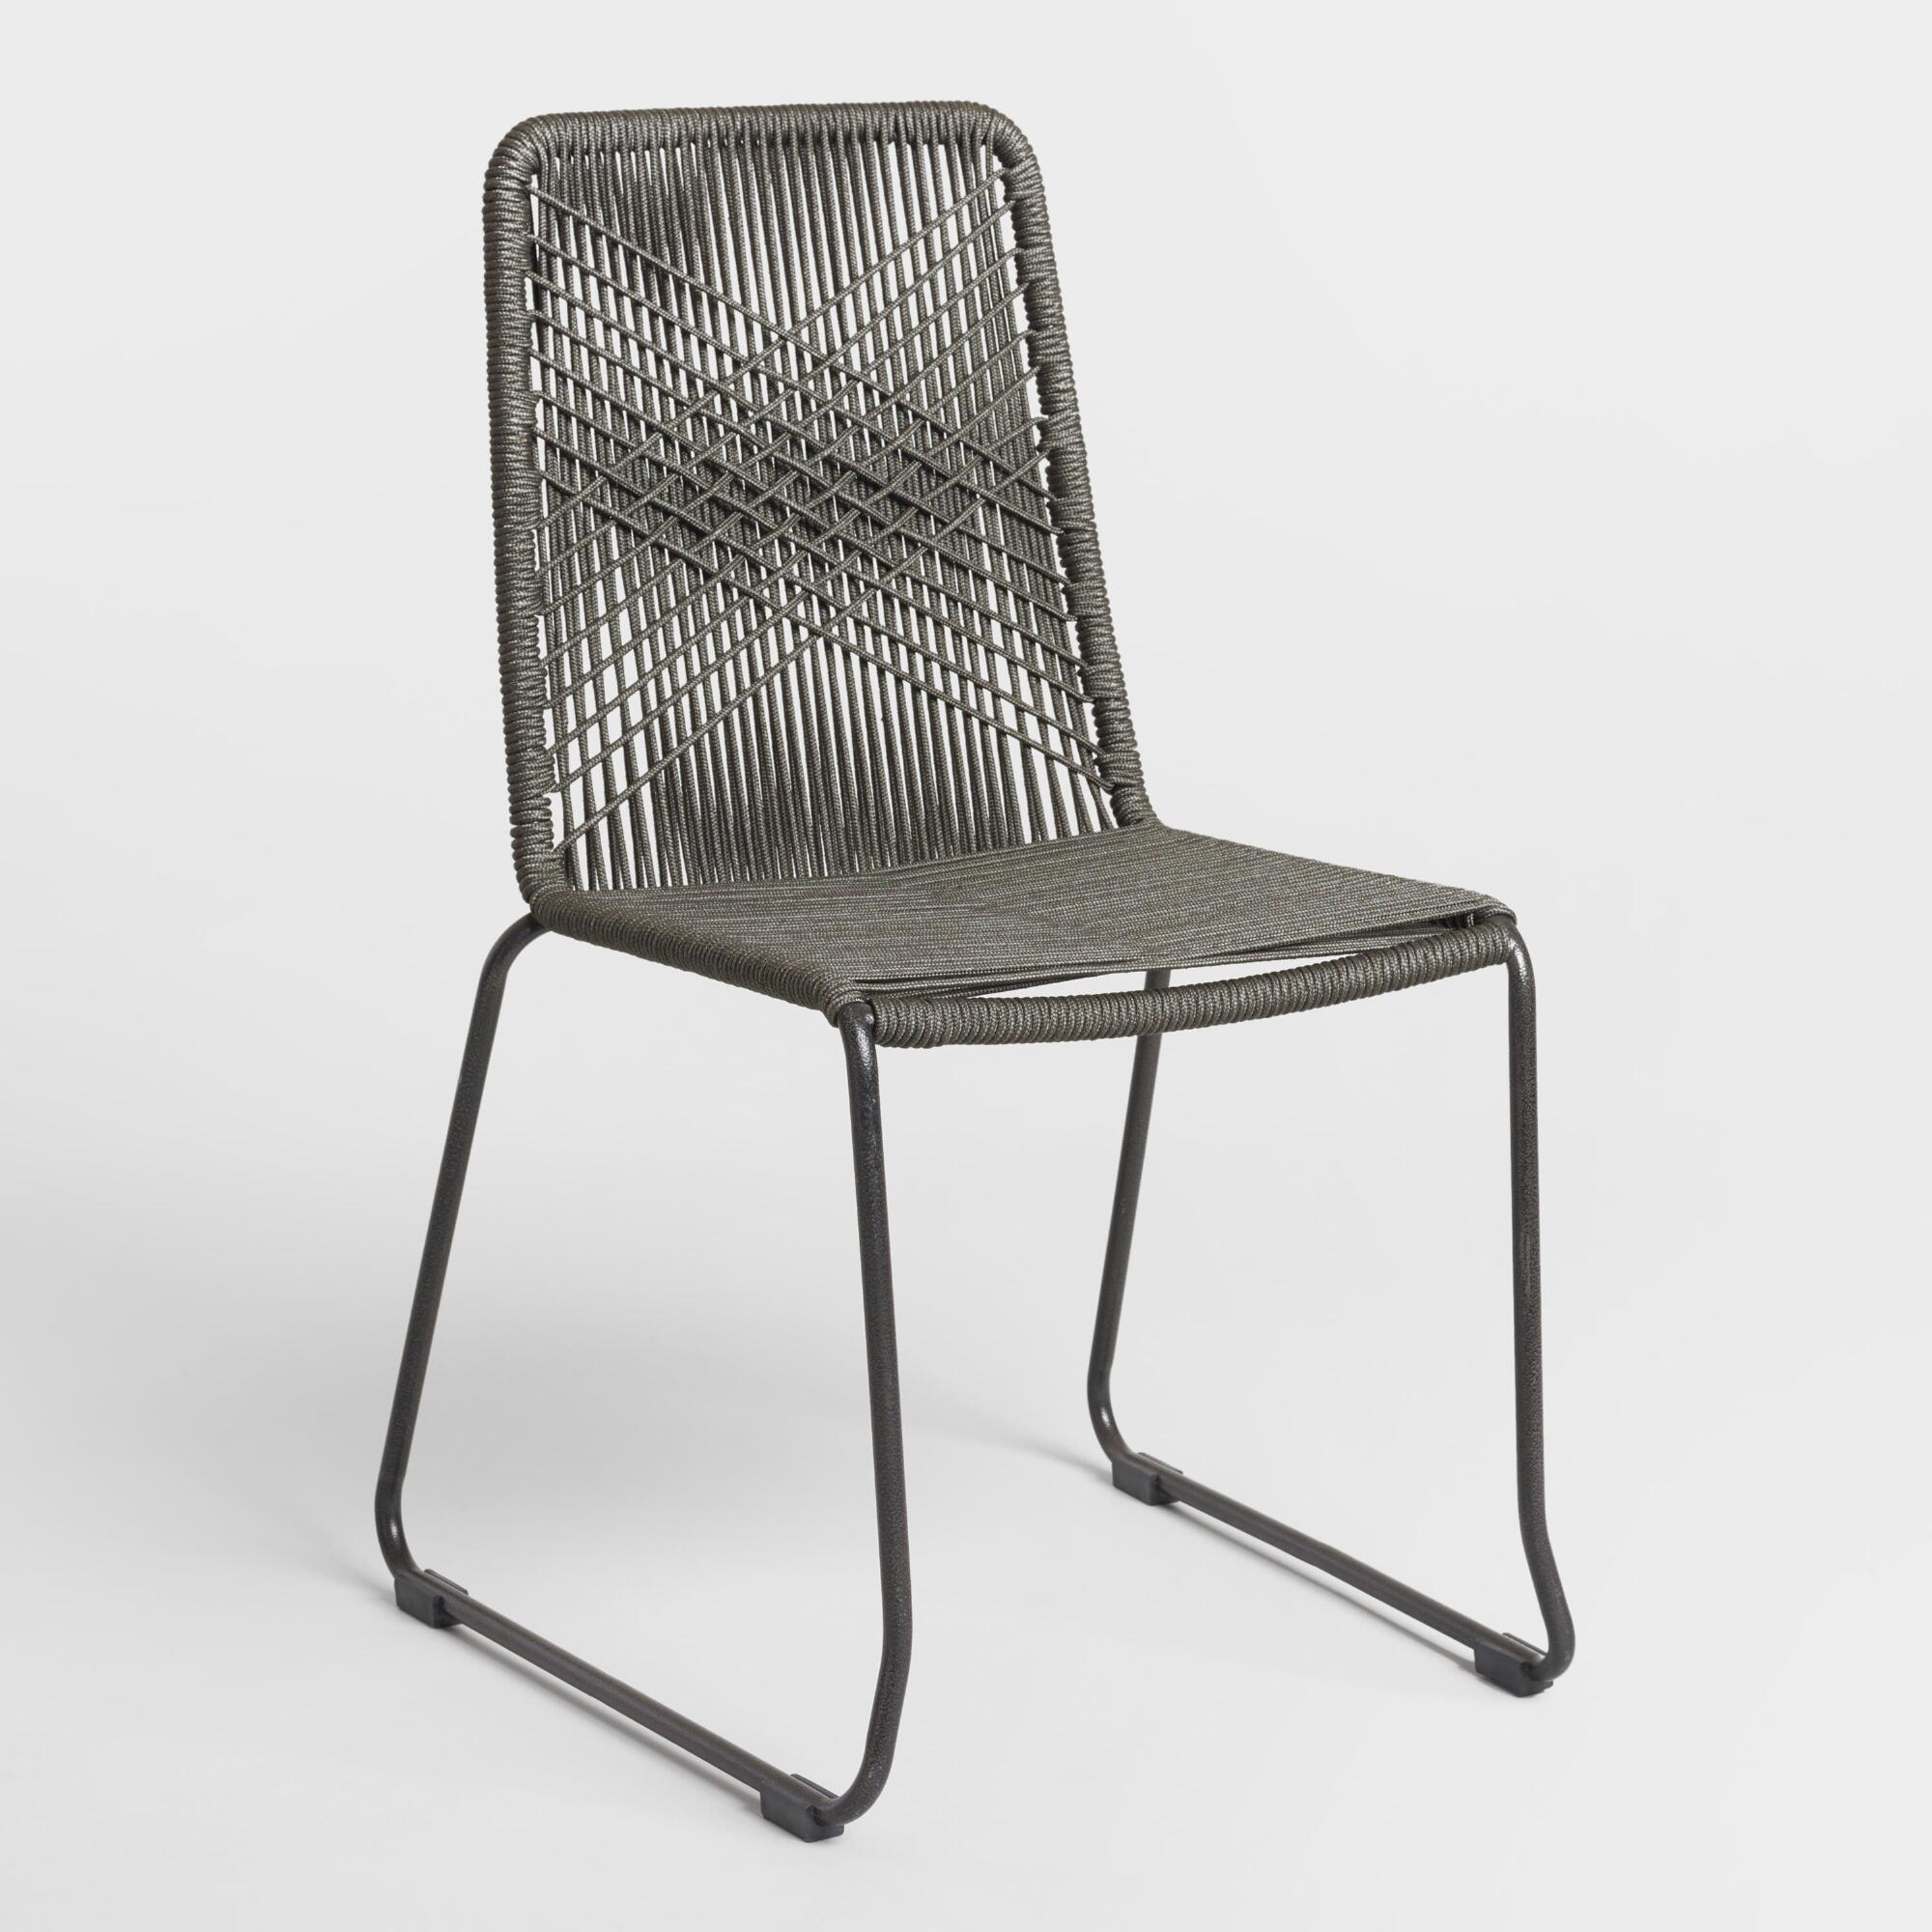 en vedbo products armchair catalog ikea ca gray chair